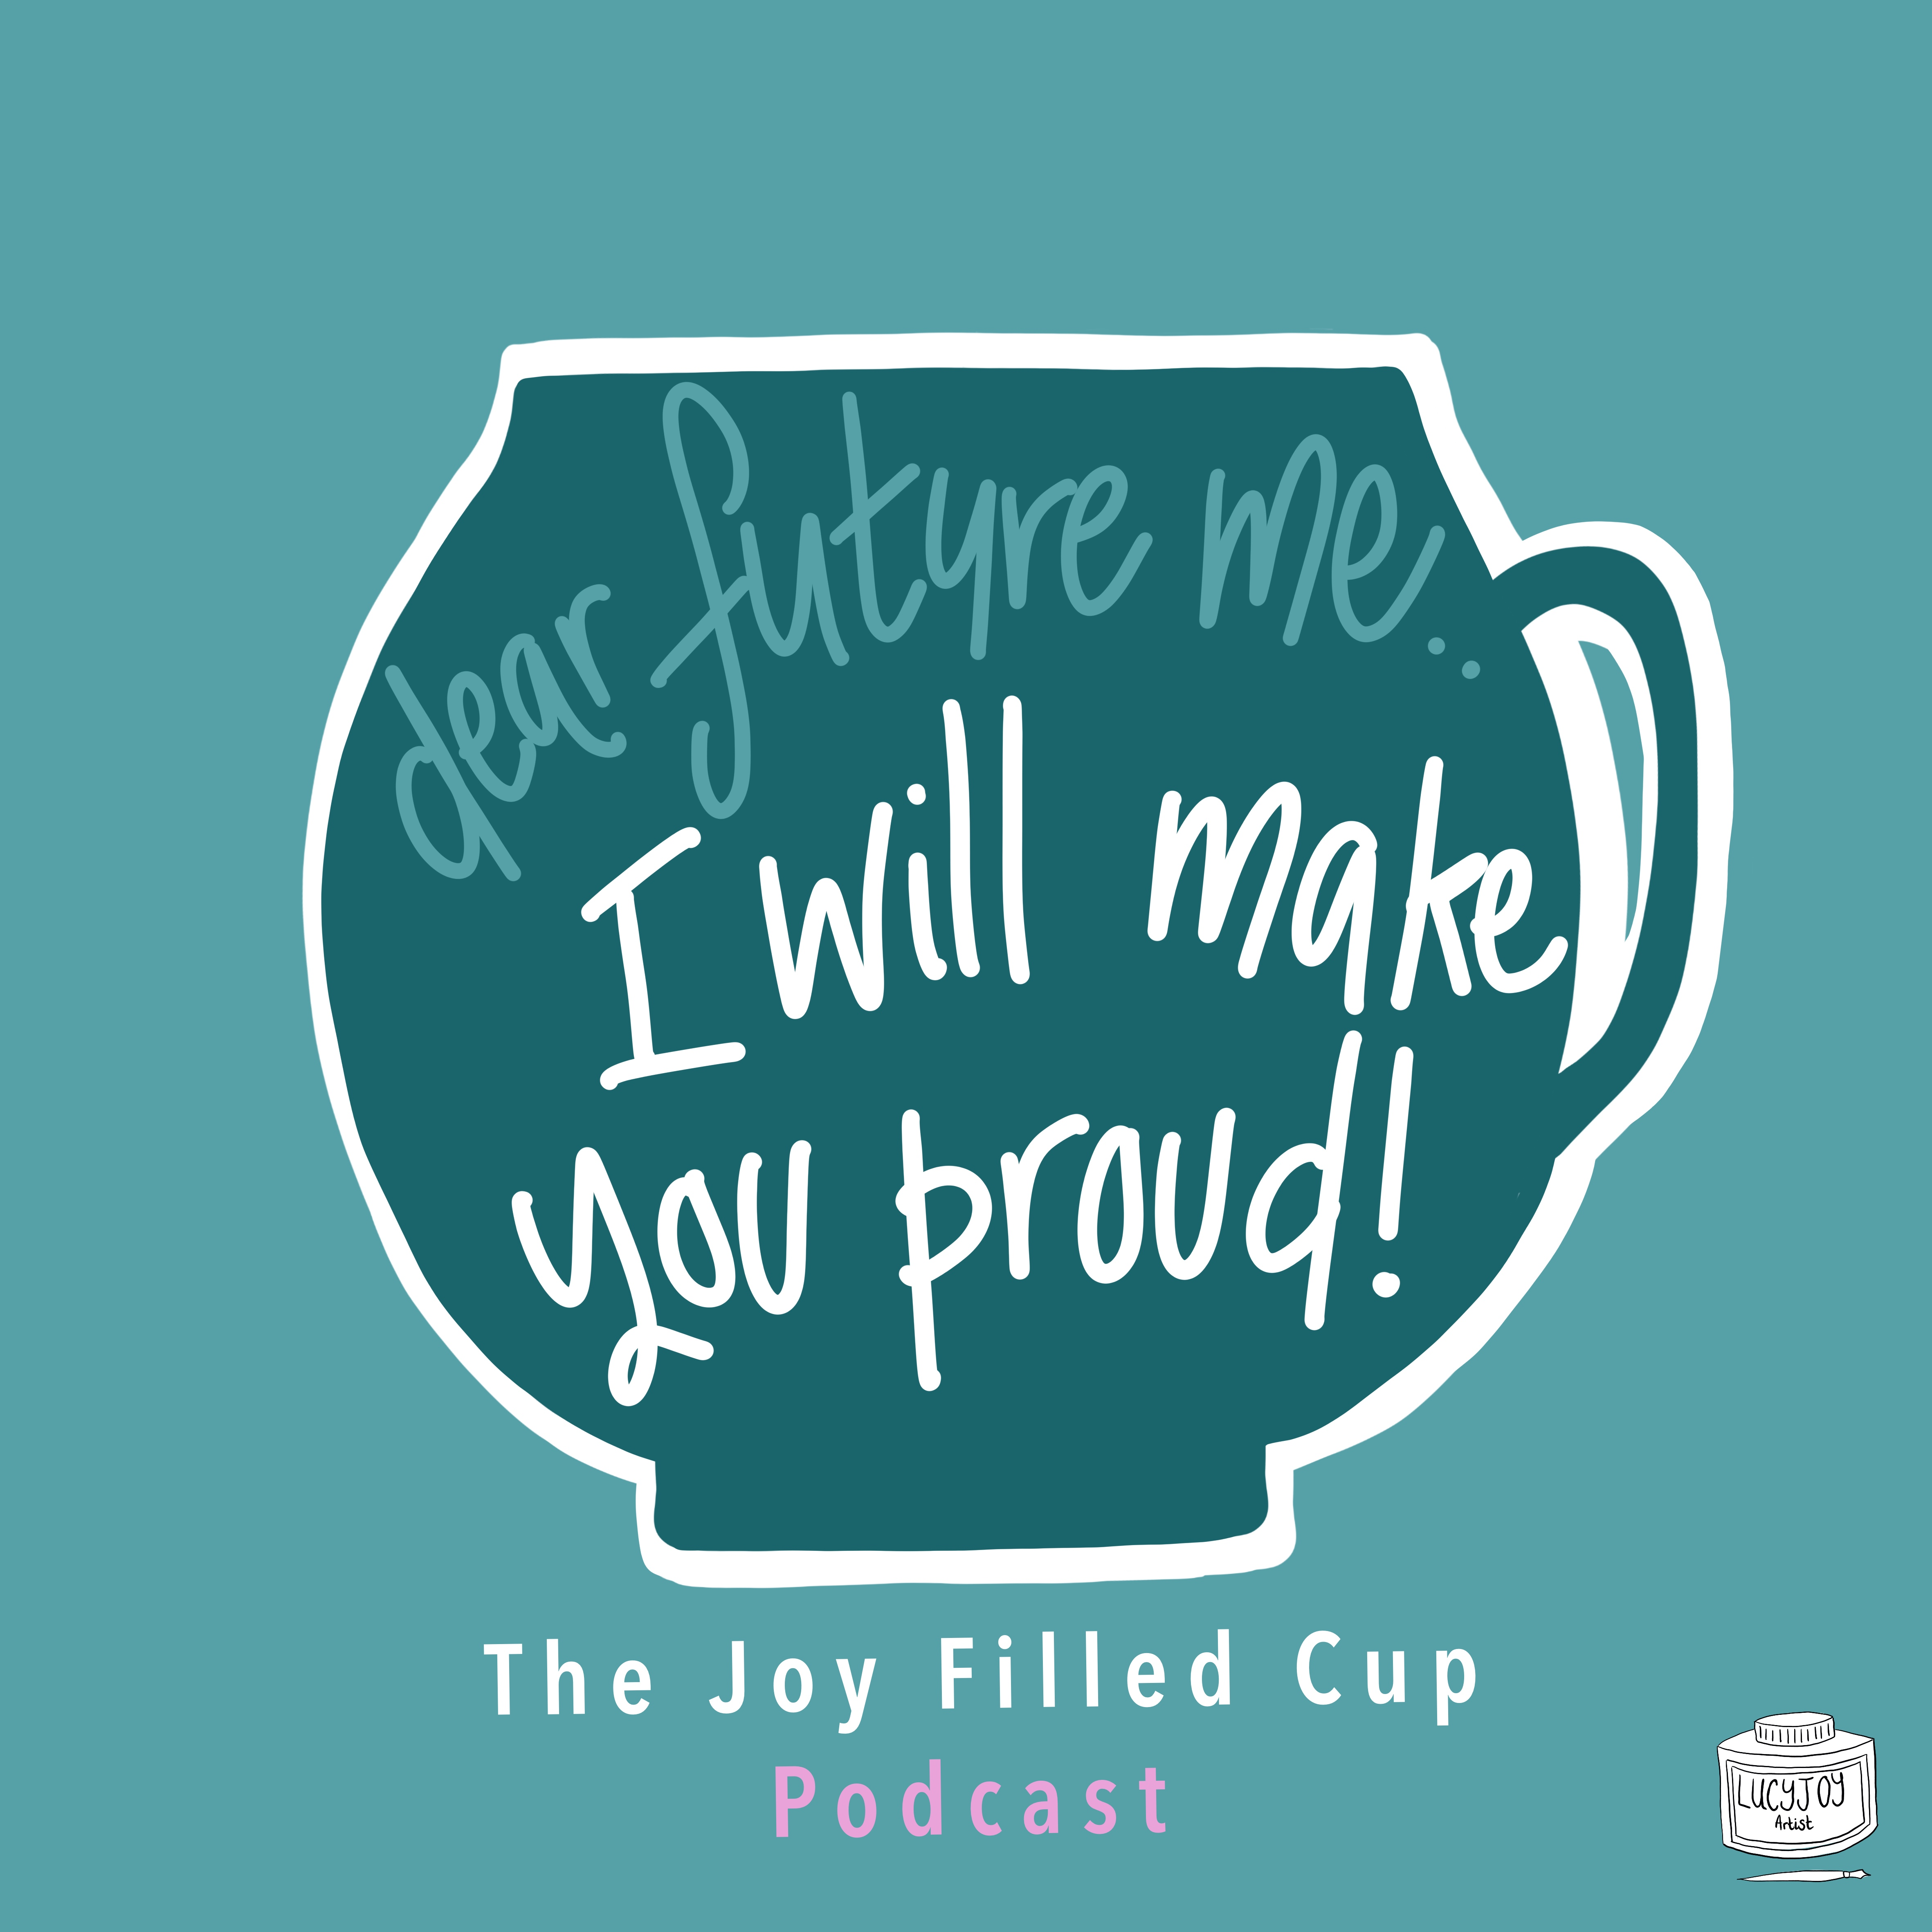 Dear future me - the joy filled cup